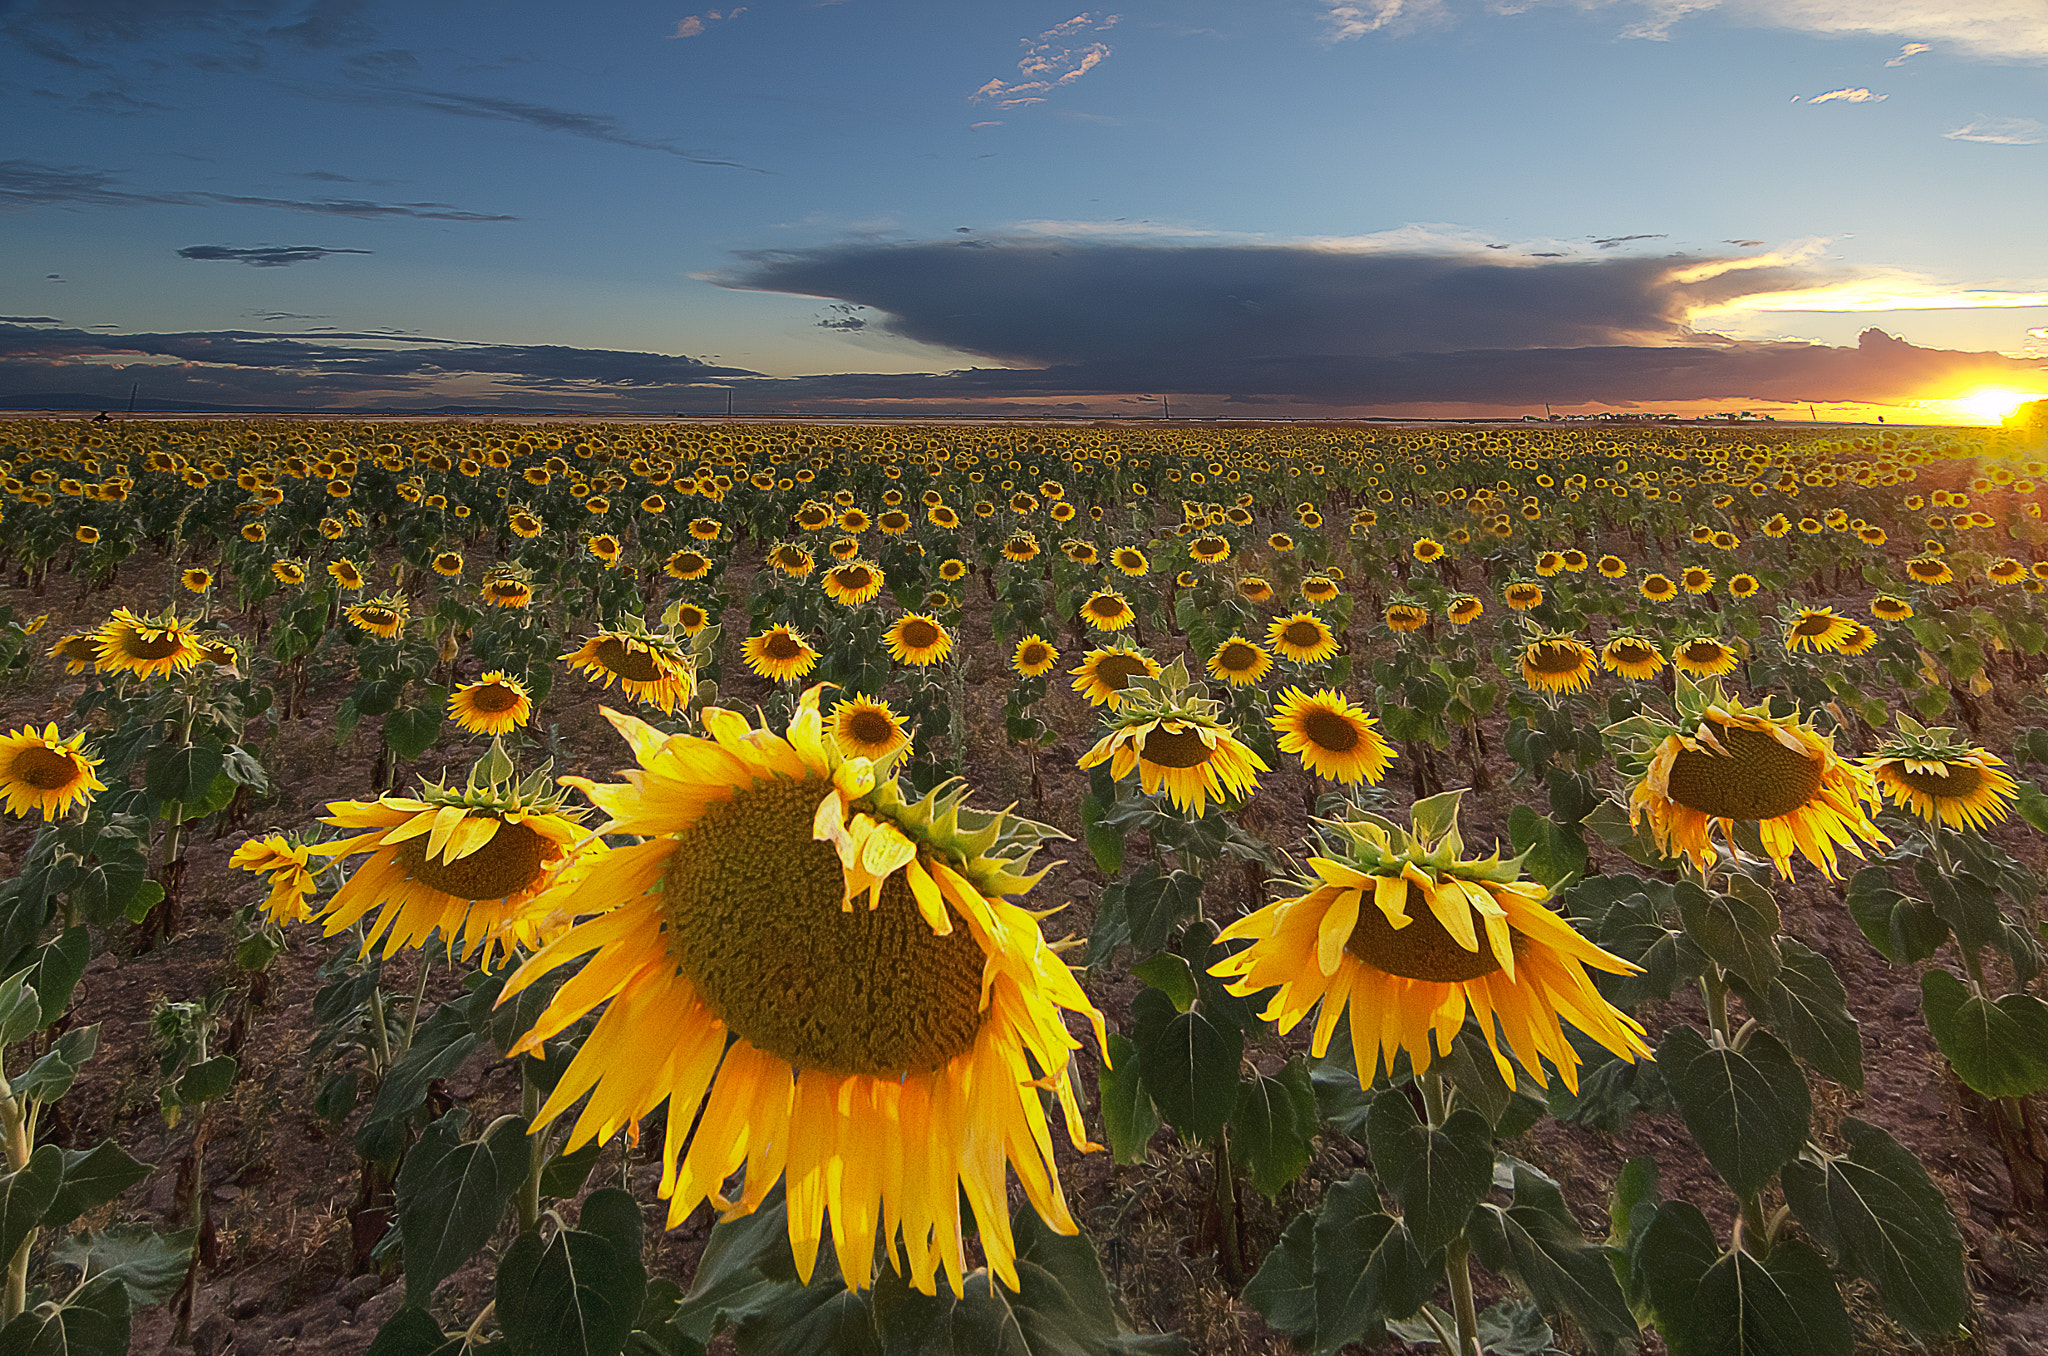 Photograph Campo de girasoles by Eduardo Menendez on 500px